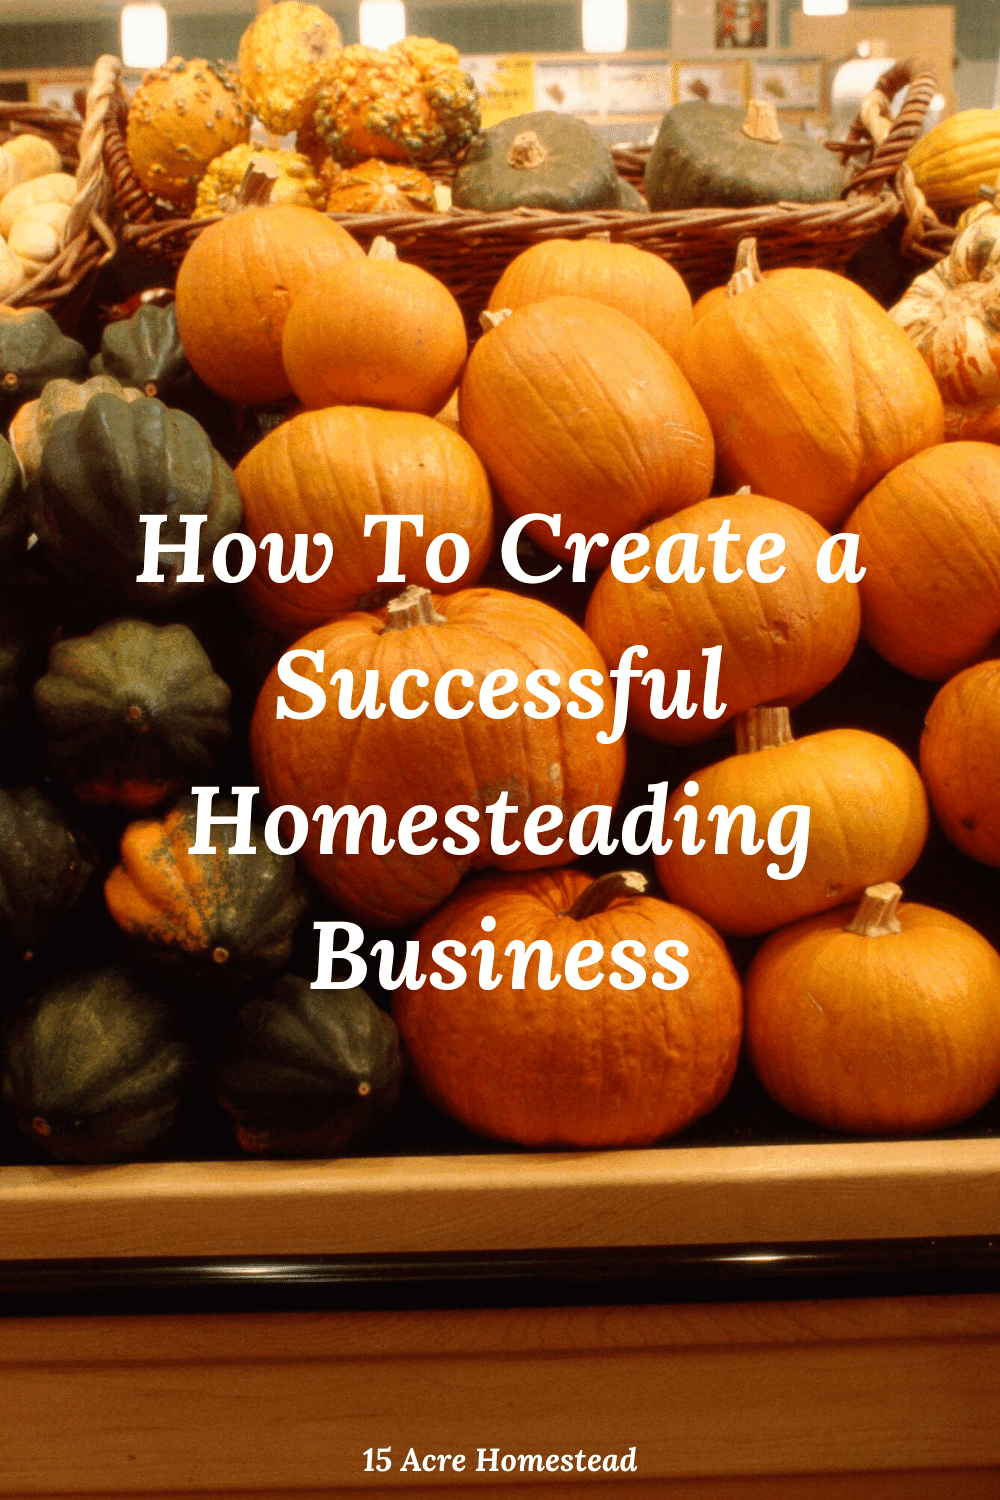 If you are thinking about starting a homesteading business, take these tips and suggestions to mind before you get started.